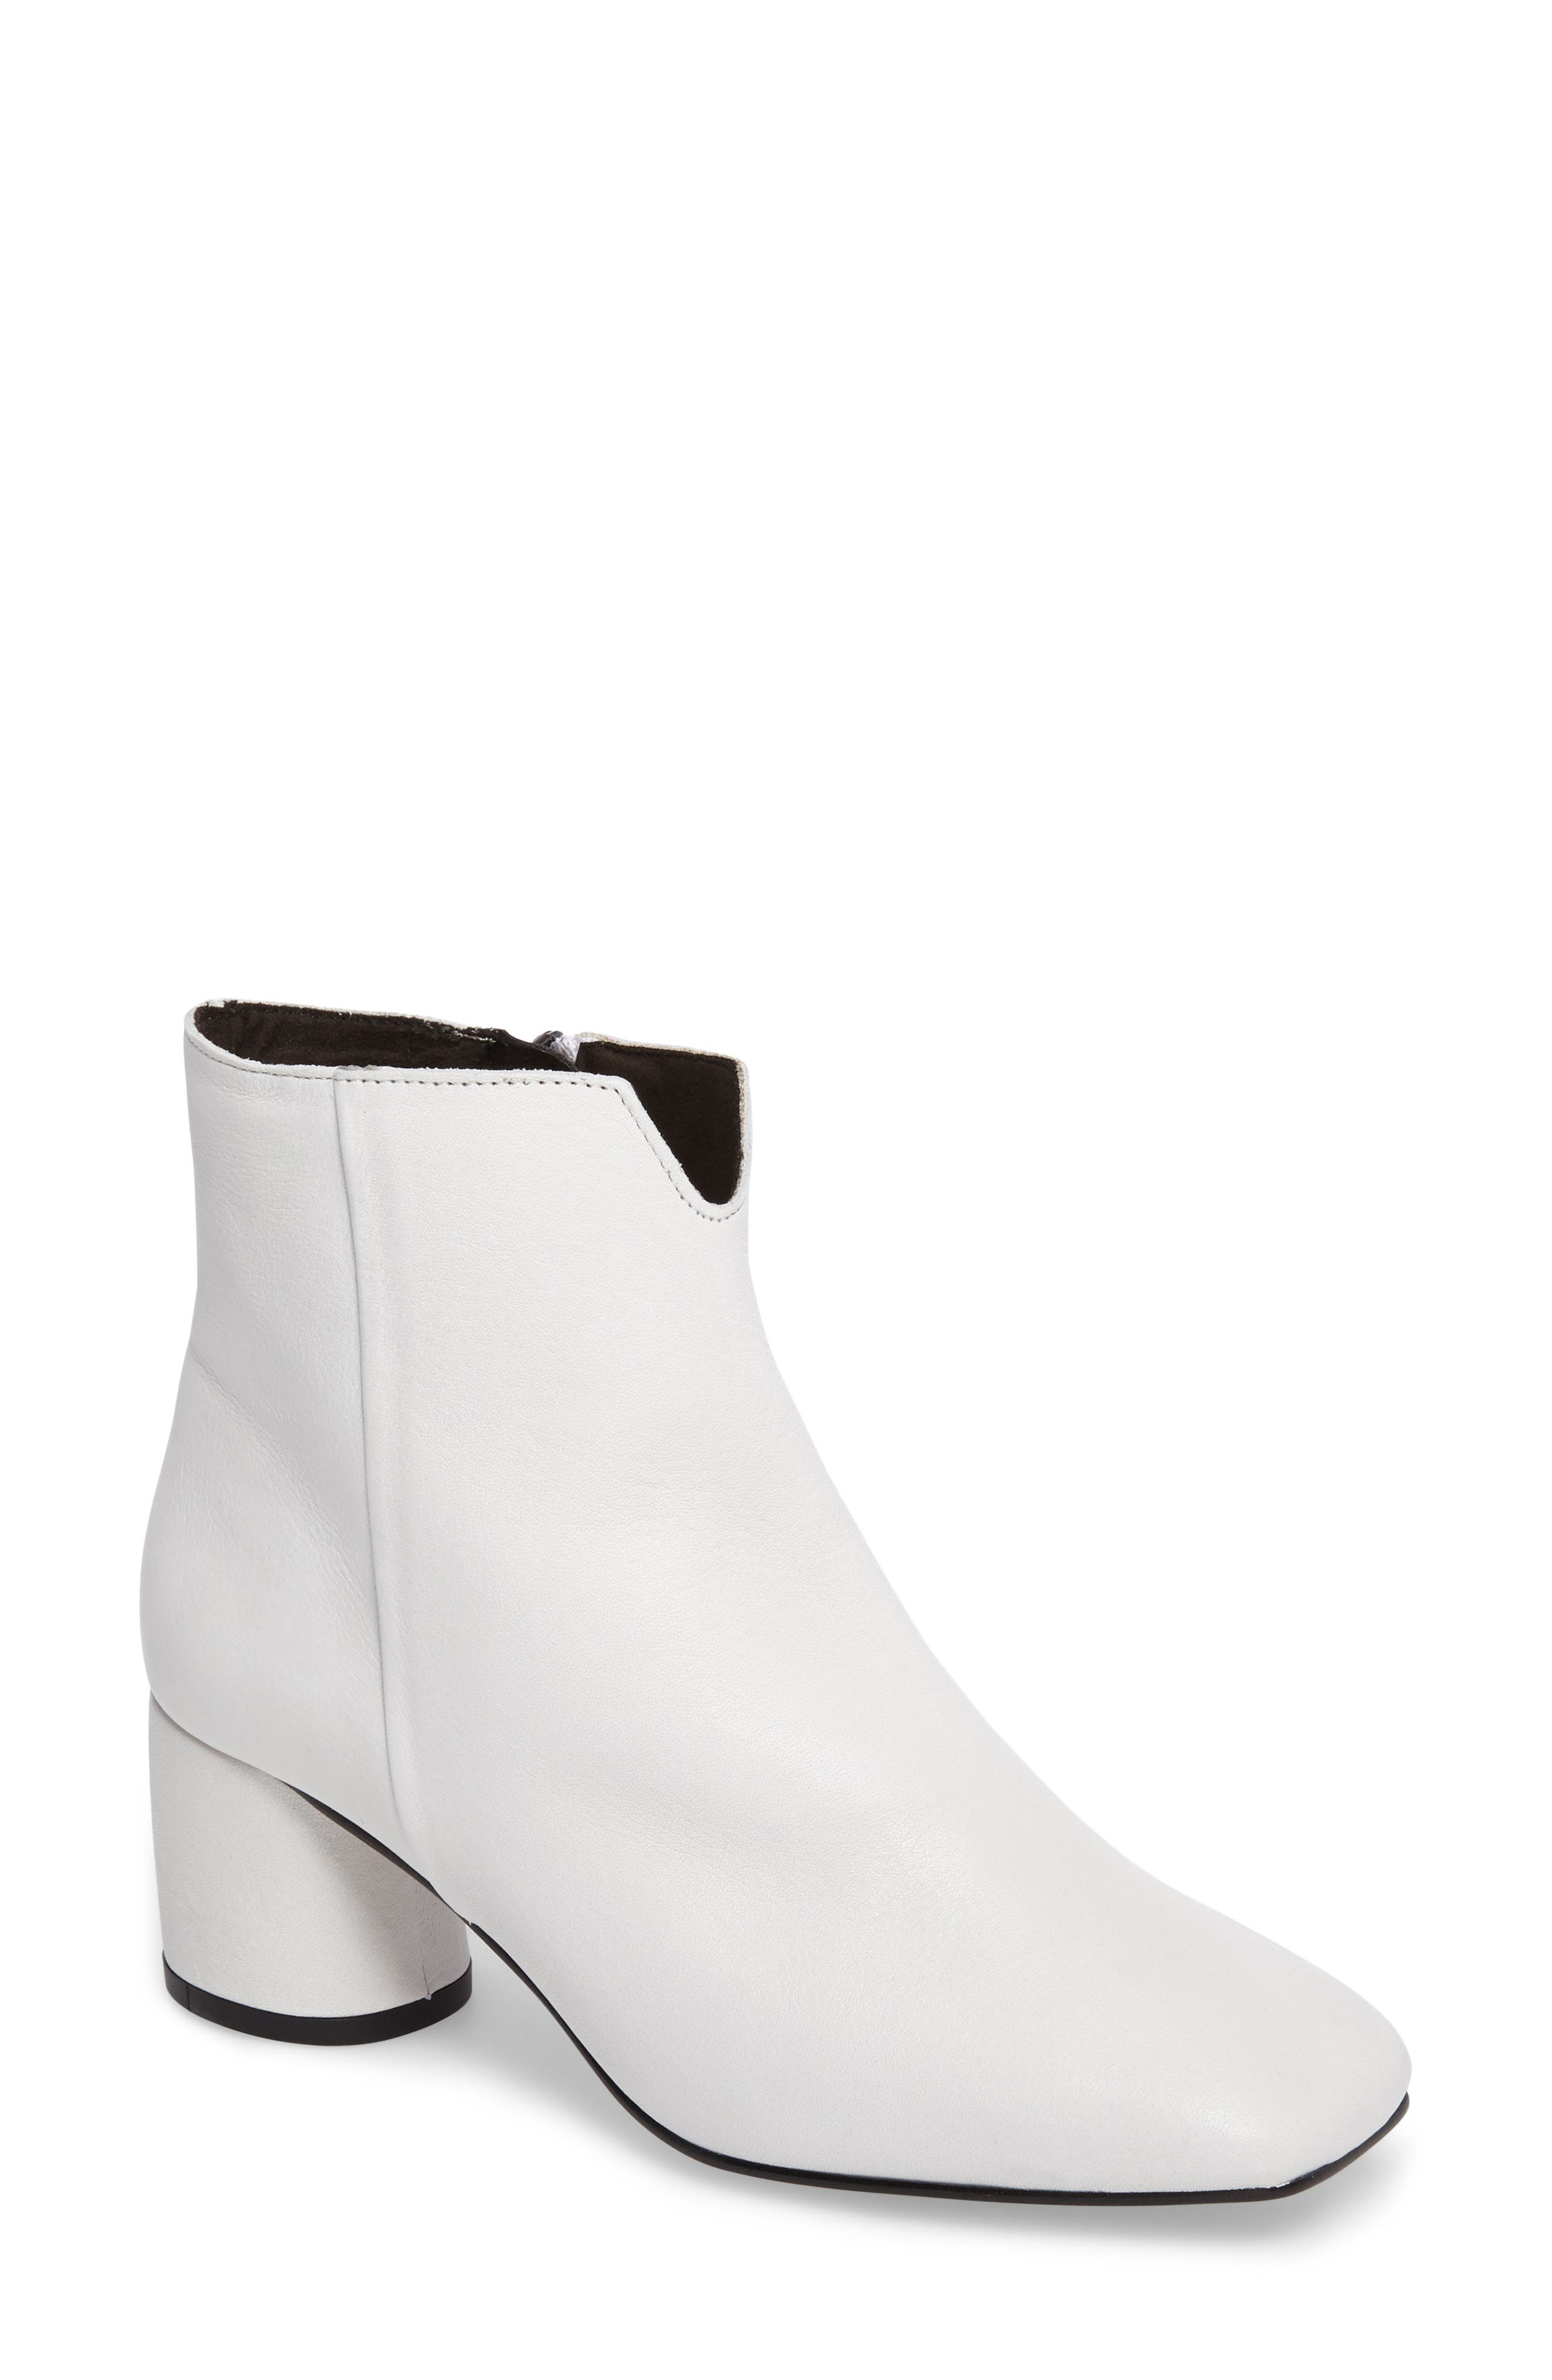 Alternate Image 1 Selected - Topshop Marilo Block Heel Bootie (Women)